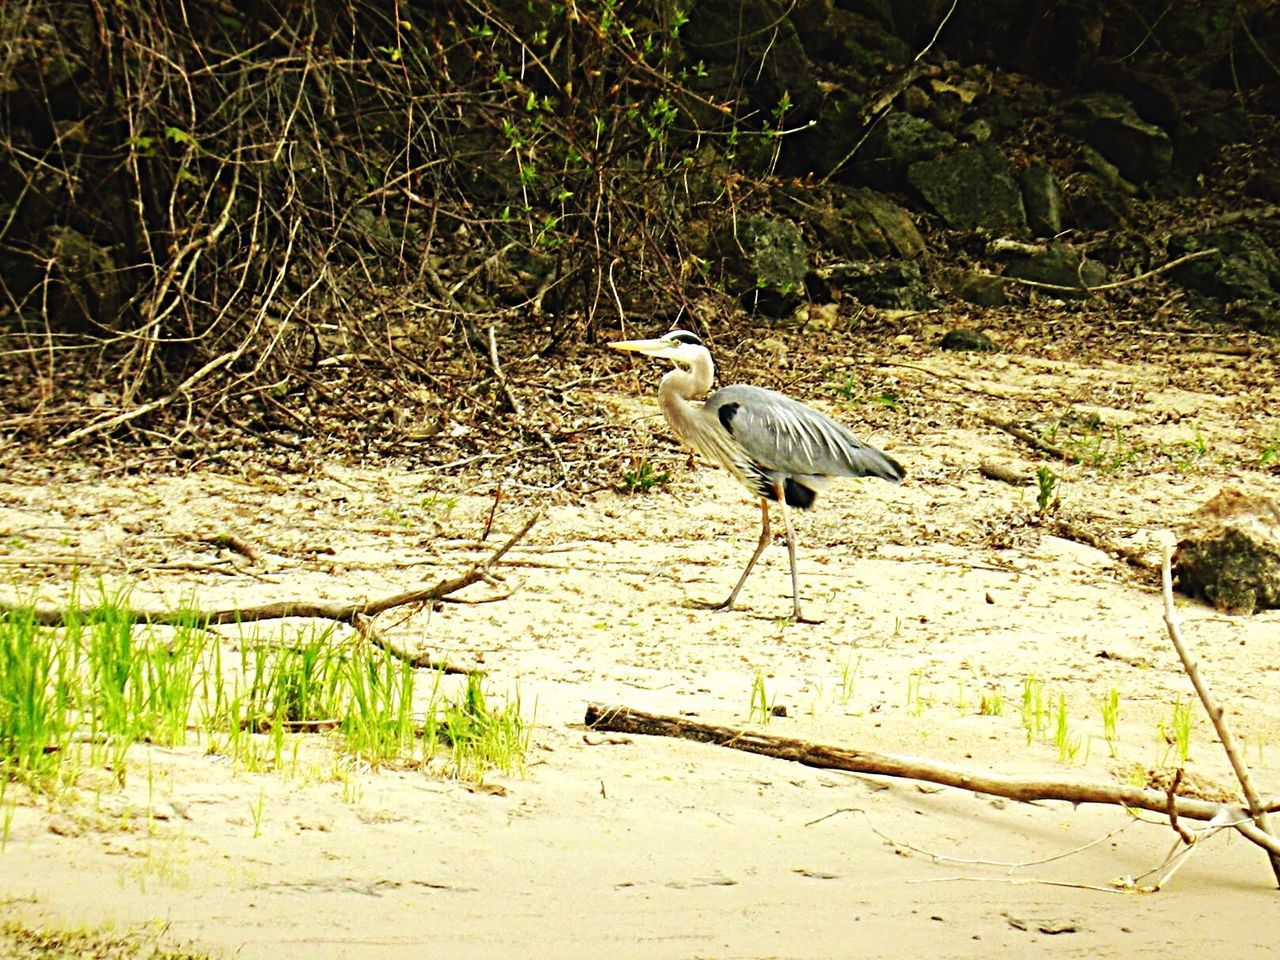 Blue Heron Great Blue Heron Grass Green Sand Trees Bird Bird Photography Birdwatching Birds EyeEm Birds Birds_collection Birds🐦⛅ Birds Of EyeEm  Bird Watching Birding Birdporn Nature_collection EyeEm Nature Lover Nature Photography Beautiful Nature Lynxville Dam Lynxville, Wisconsin Wisconsin Birdfreaks